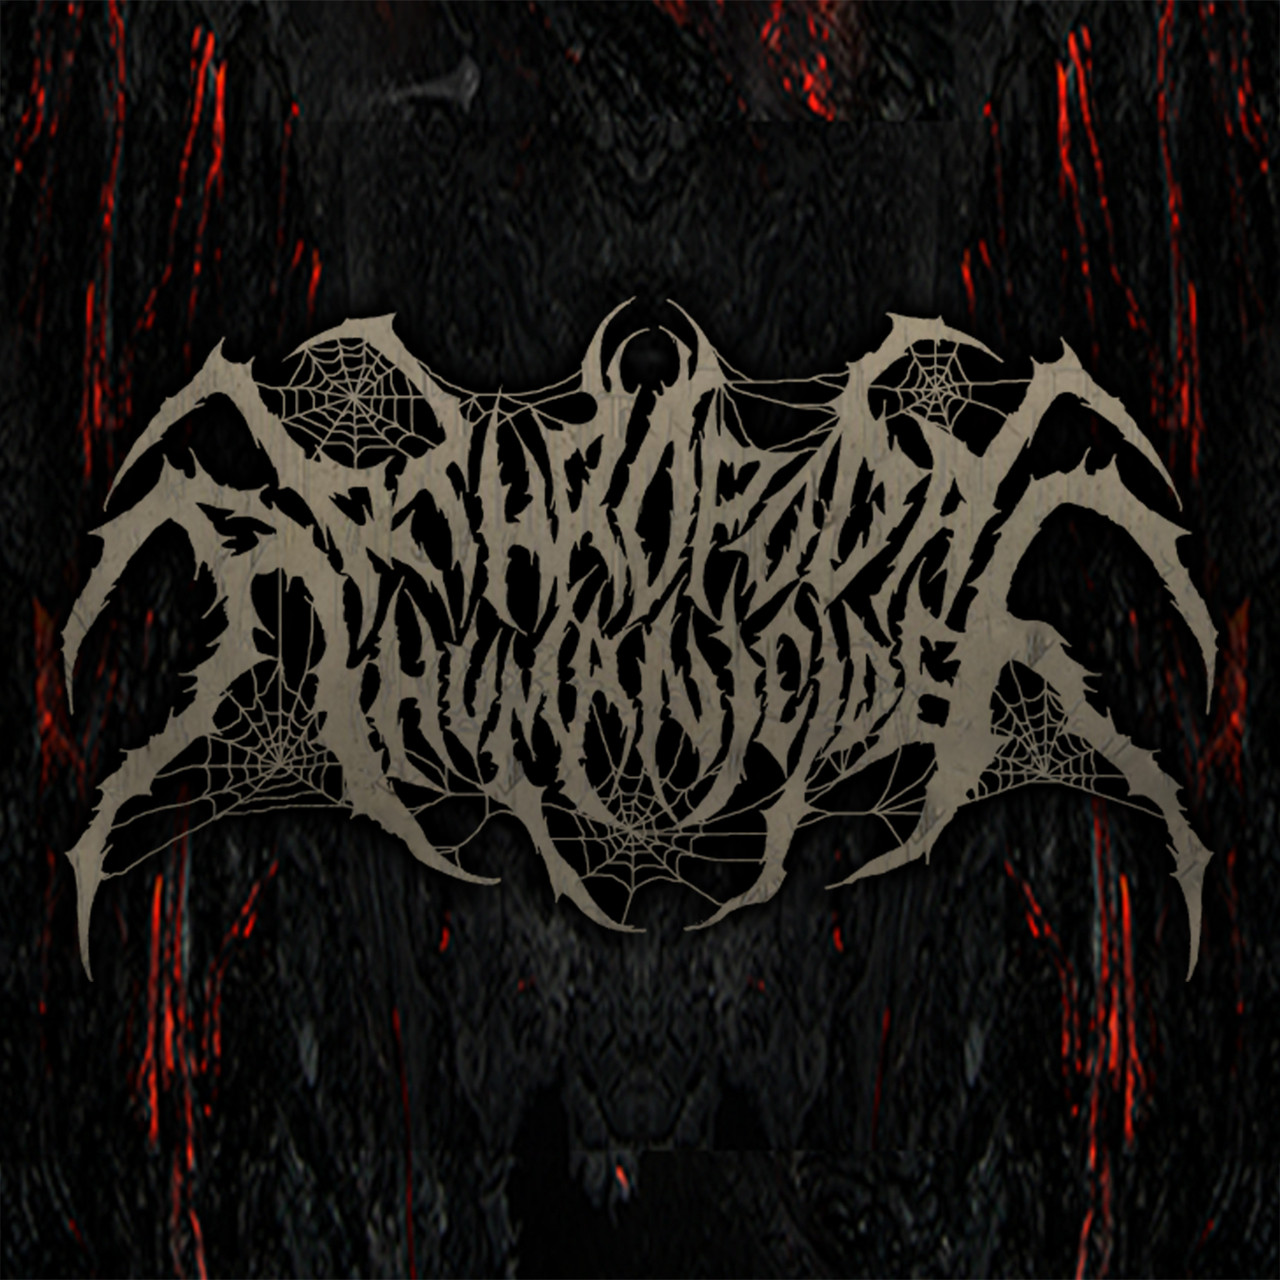 Arthropodal Humanicide